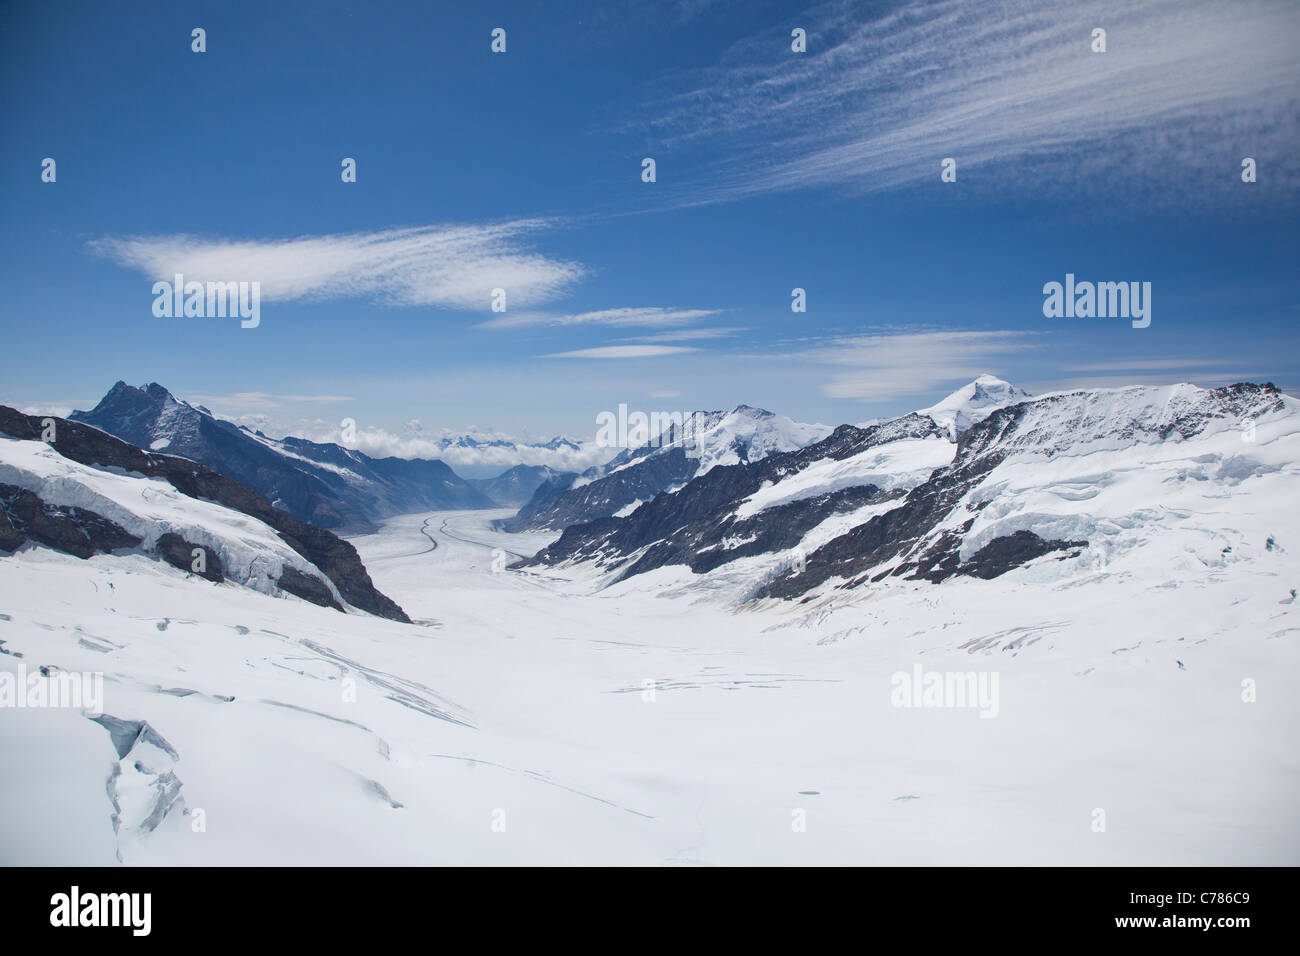 glacier in the Swiss Alps, Jungfrau region on a clear sunny day - Stock Image